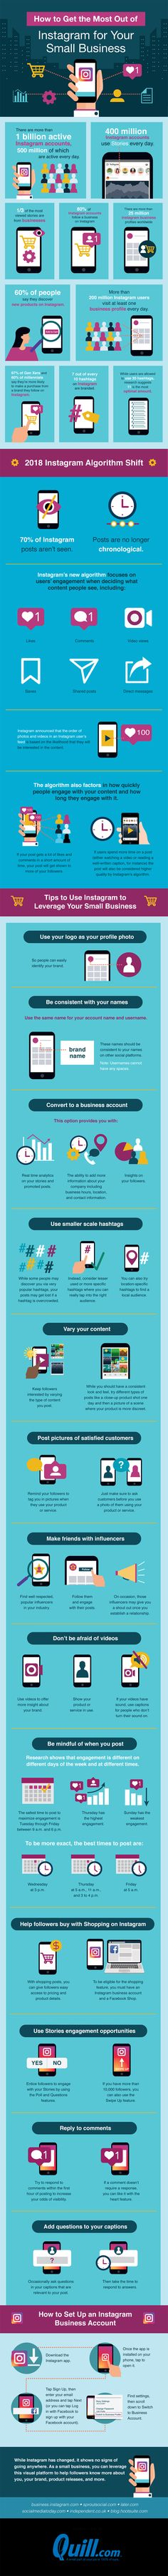 Infographic outlines stats and tips for Instagram marketing Small Business Marketing, Business Branding, Email Marketing, Social Media Marketing, Online Business, Digital Marketing, Stationery Business, Instagram Marketing Tips, Instagram Tips